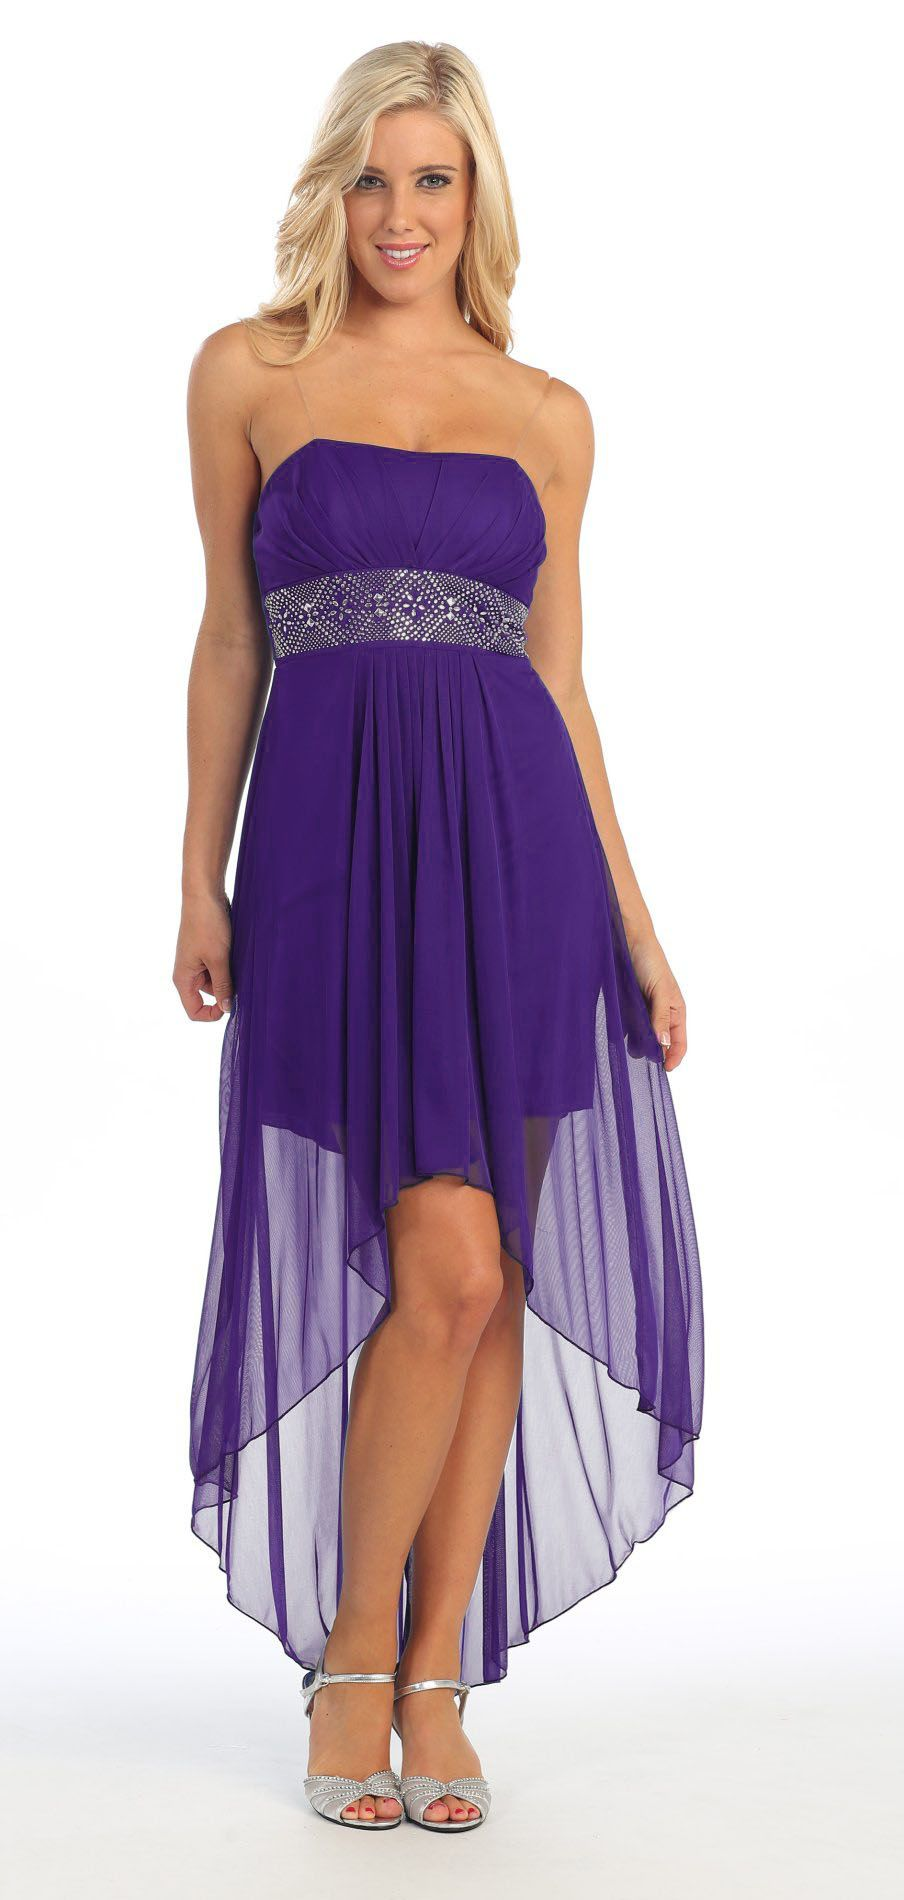 Strapless high low lavender bridesmaid dress flowy chiffon empire strapless high low lavender bridesmaid dress flowy chiffon empire maternity evening gownsformal maternity dressessemi ombrellifo Images